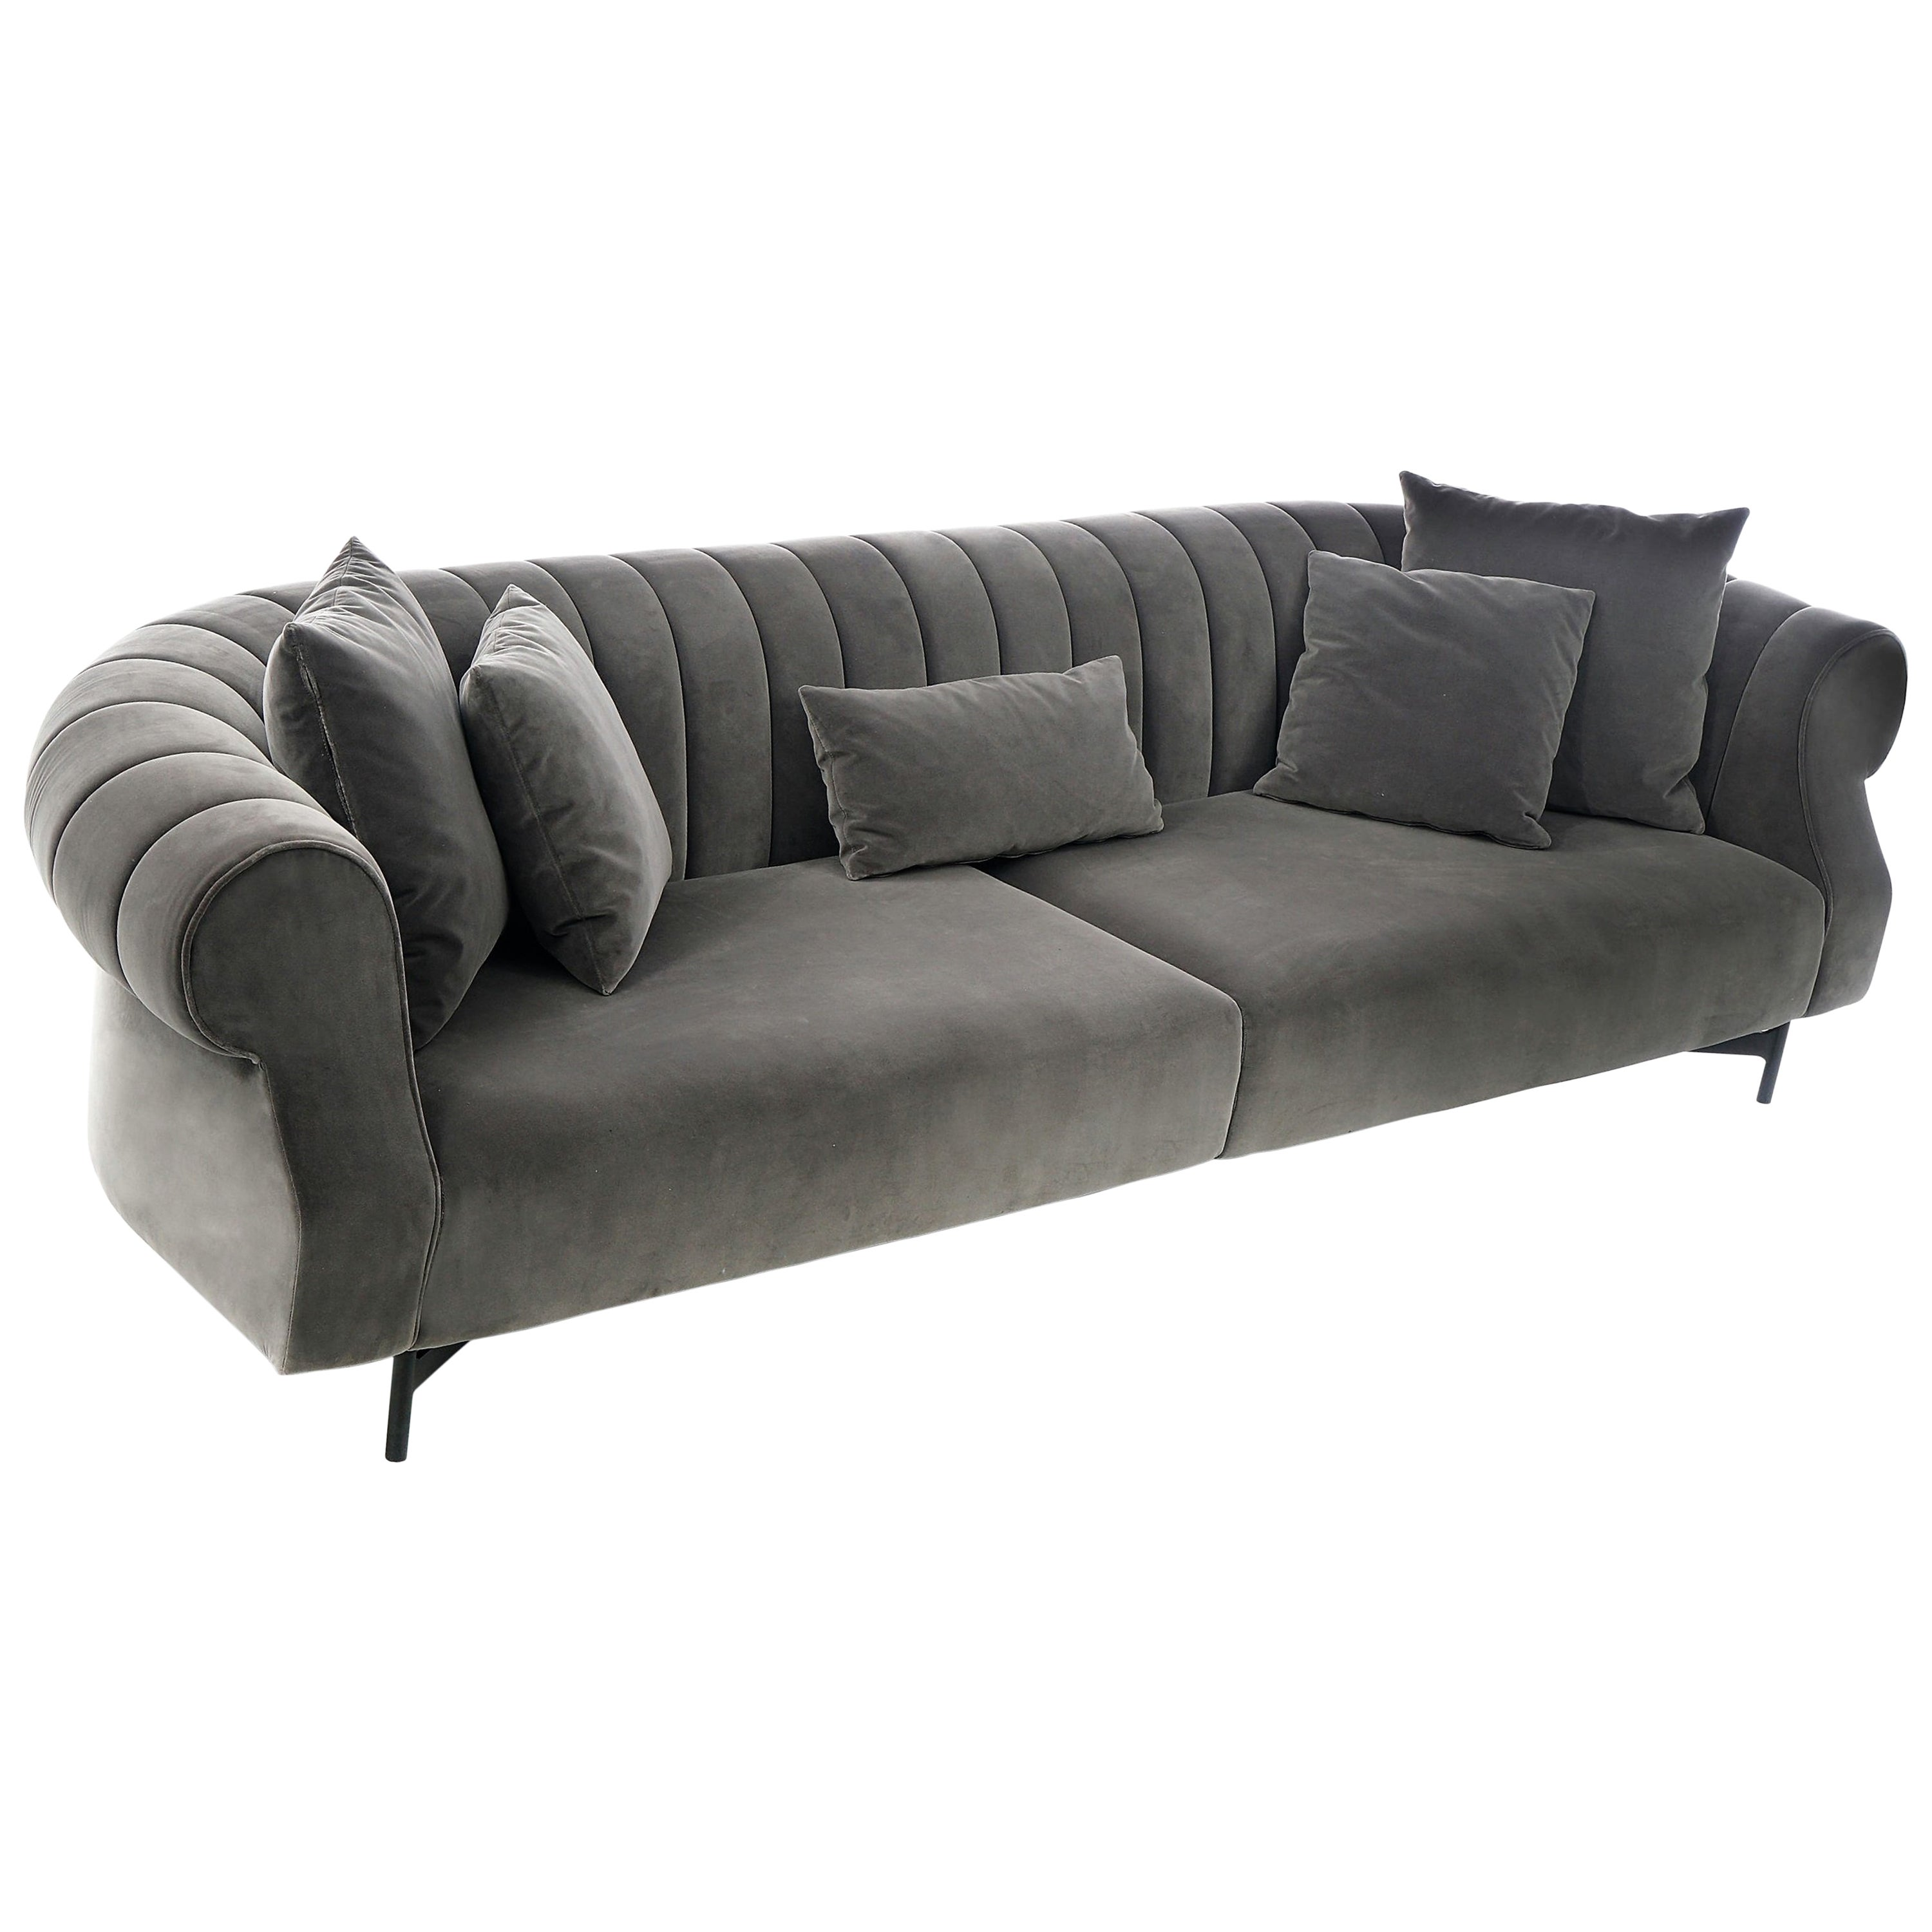 Contempo Curved Sofa, Grey Velvet Sofa by Maurizio Manzoni - Ready ...